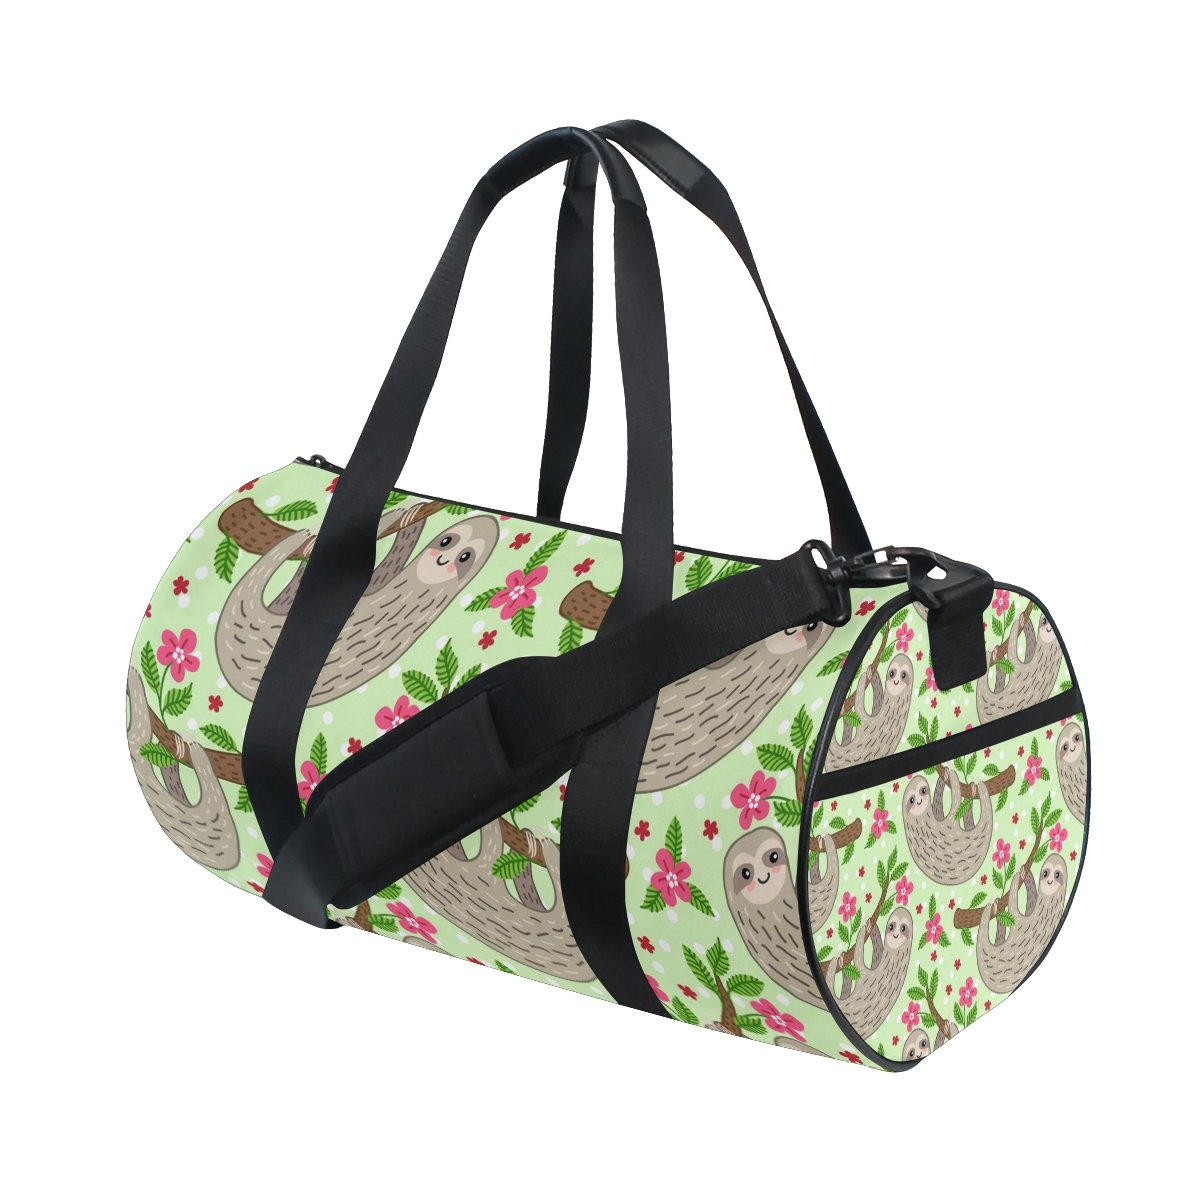 Cute Cartoon Sloth Duffle Bag Sports gym Bag Luggage Travel Bag with Shoulder Strap for Men and Women